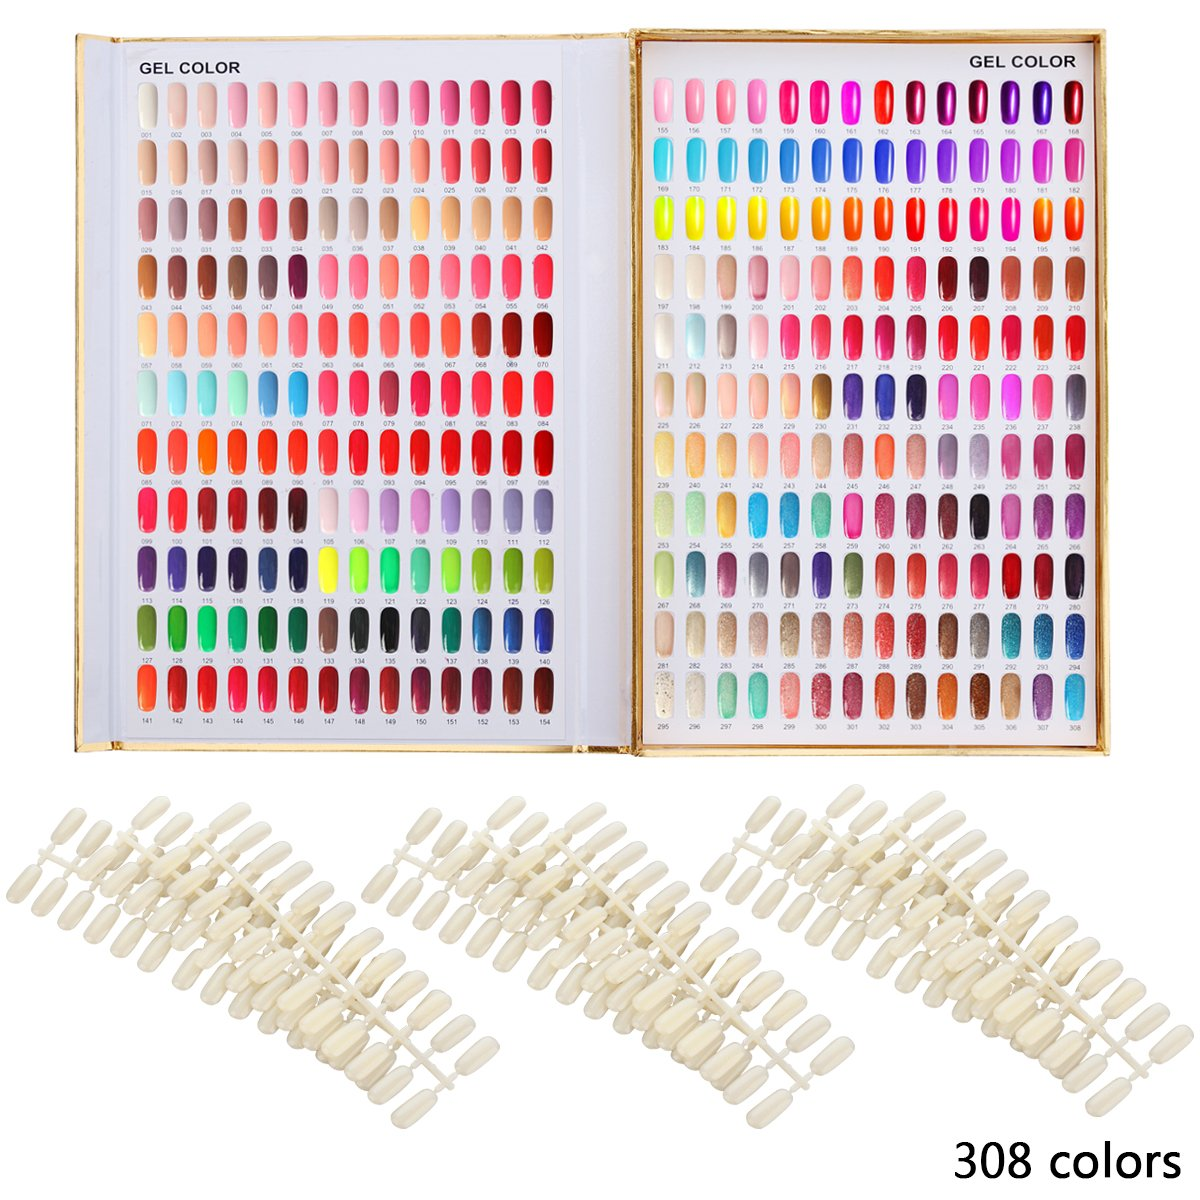 Cheap color chart find color chart deals on line at alibaba makartt 308 nail color chart display book golden nail polish uv gel color display nail salon geenschuldenfo Images